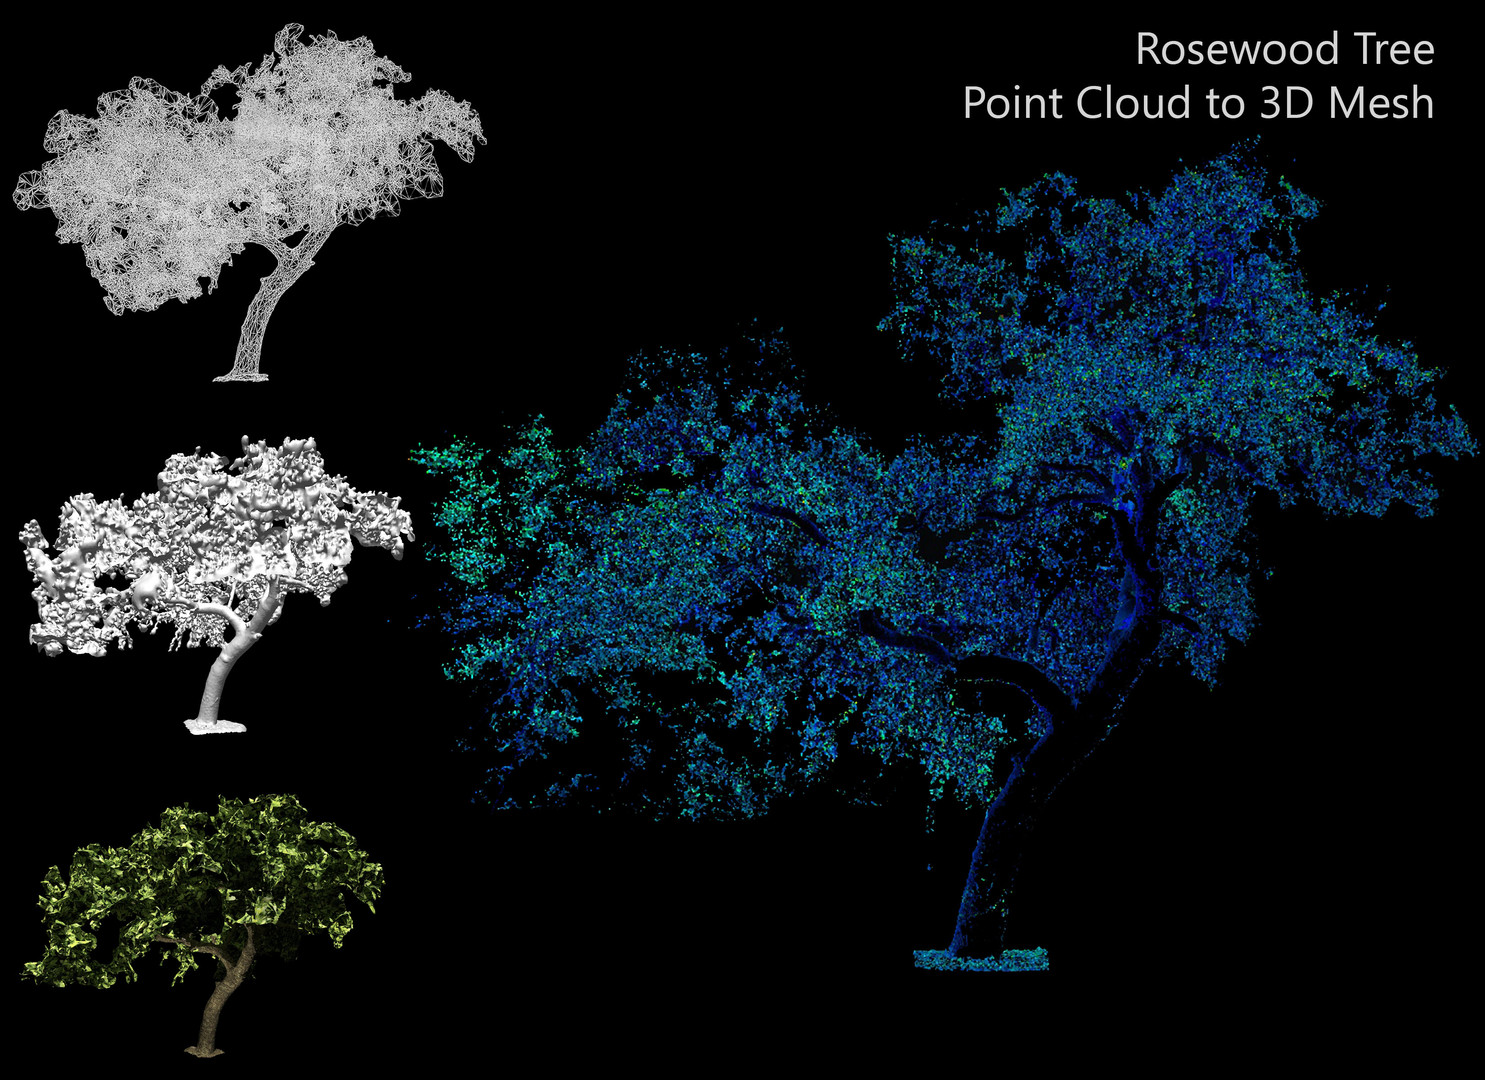 Laser scanning isn't just for buildings. Shown here is a scan of a protected rosewood tree. This tree was obstructing the construction of an edition to a facility. The point cloud provided the data required to construct around the tree without removal.